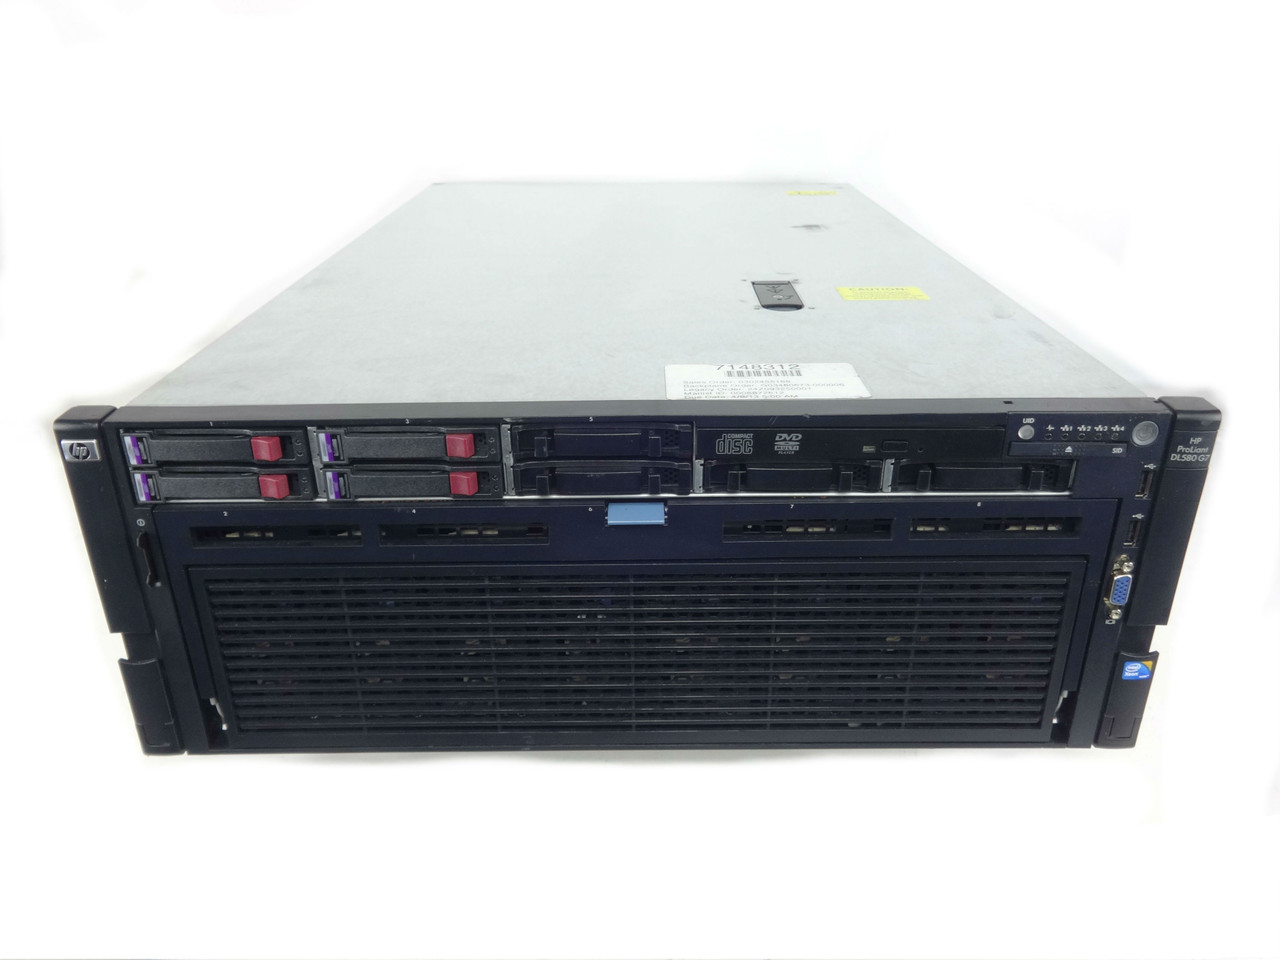 "HP Proliant DL580 G7 8x 2.5"" Server"